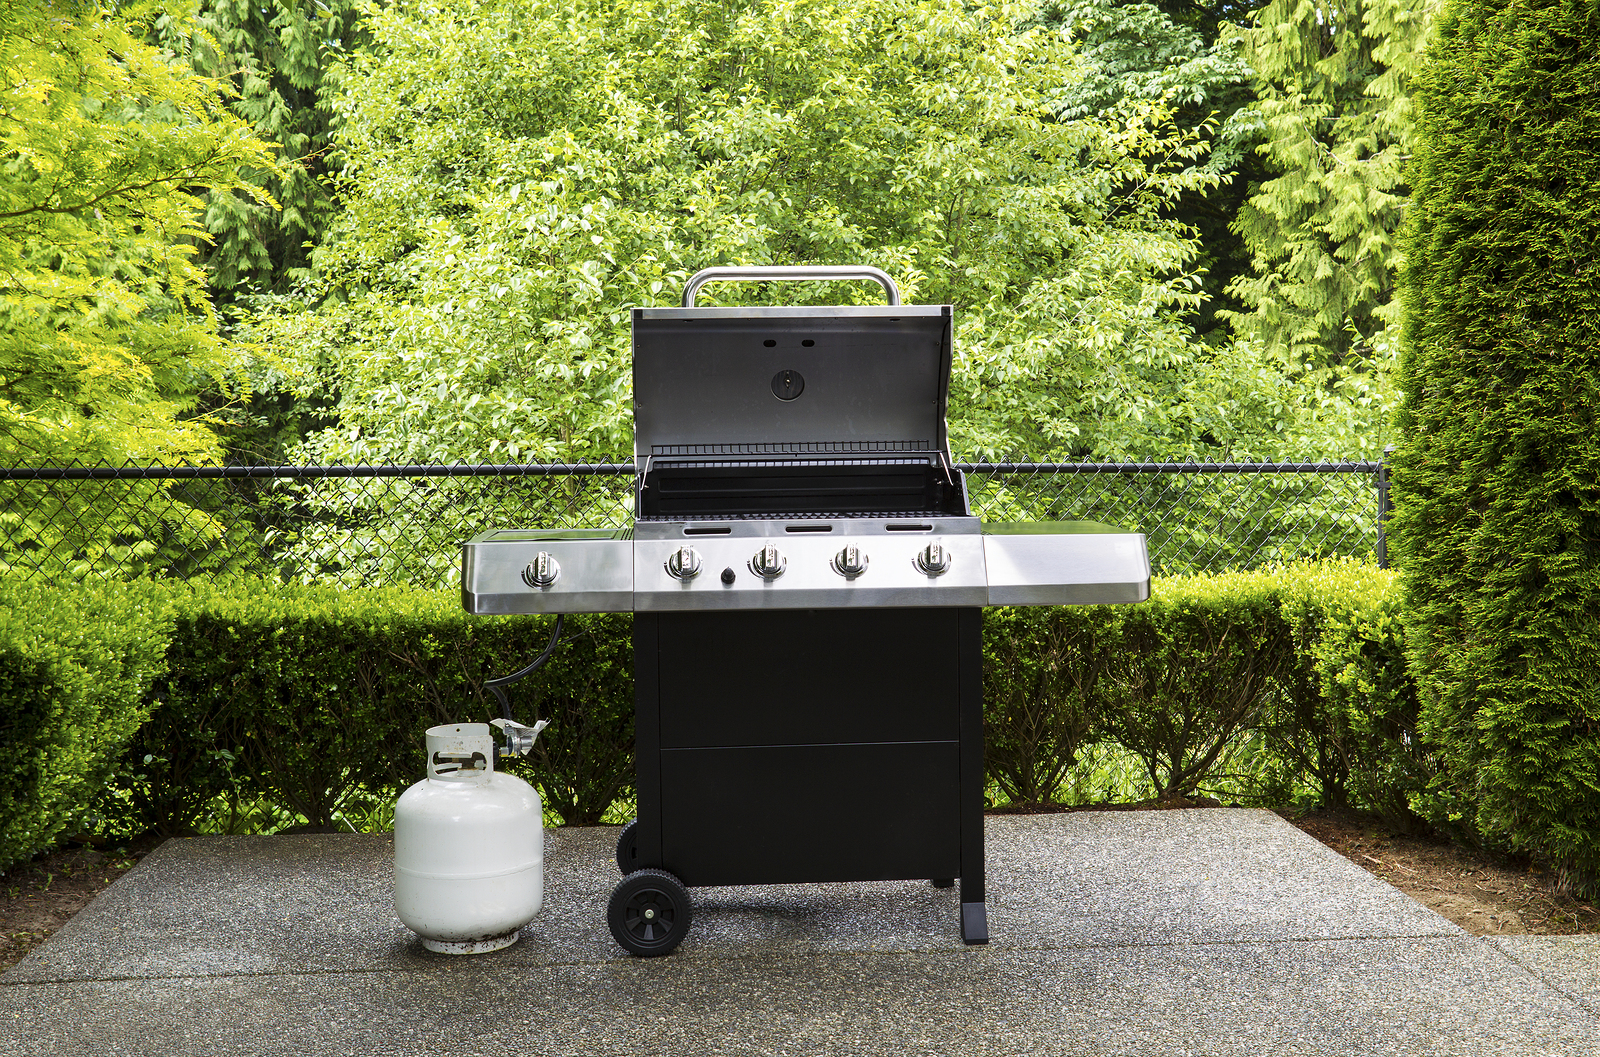 It's Grilling Season! Stay Safe by Following These Propane Tank Precautions